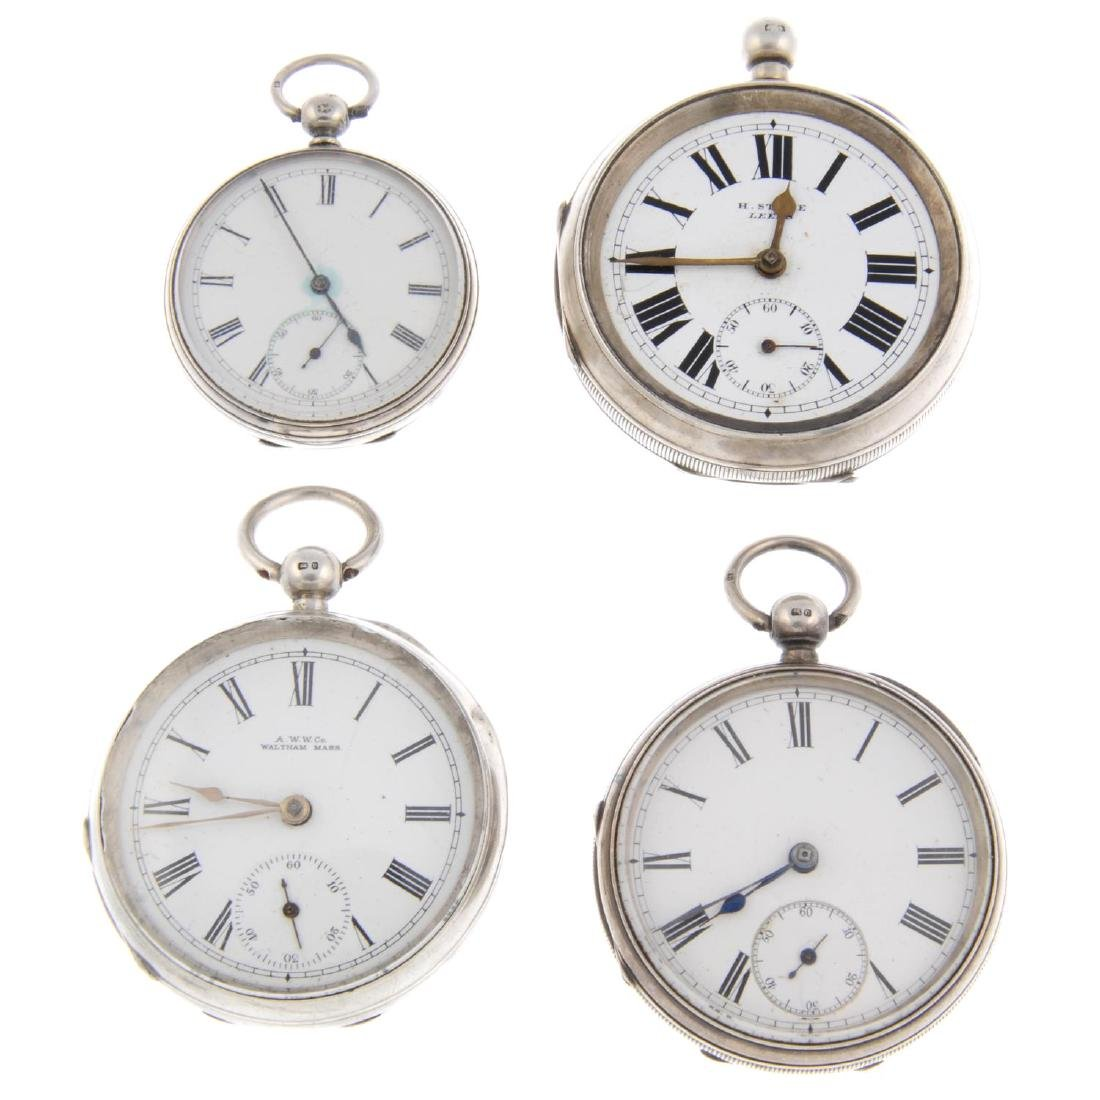 A group of four assorted silver pocket watches. All